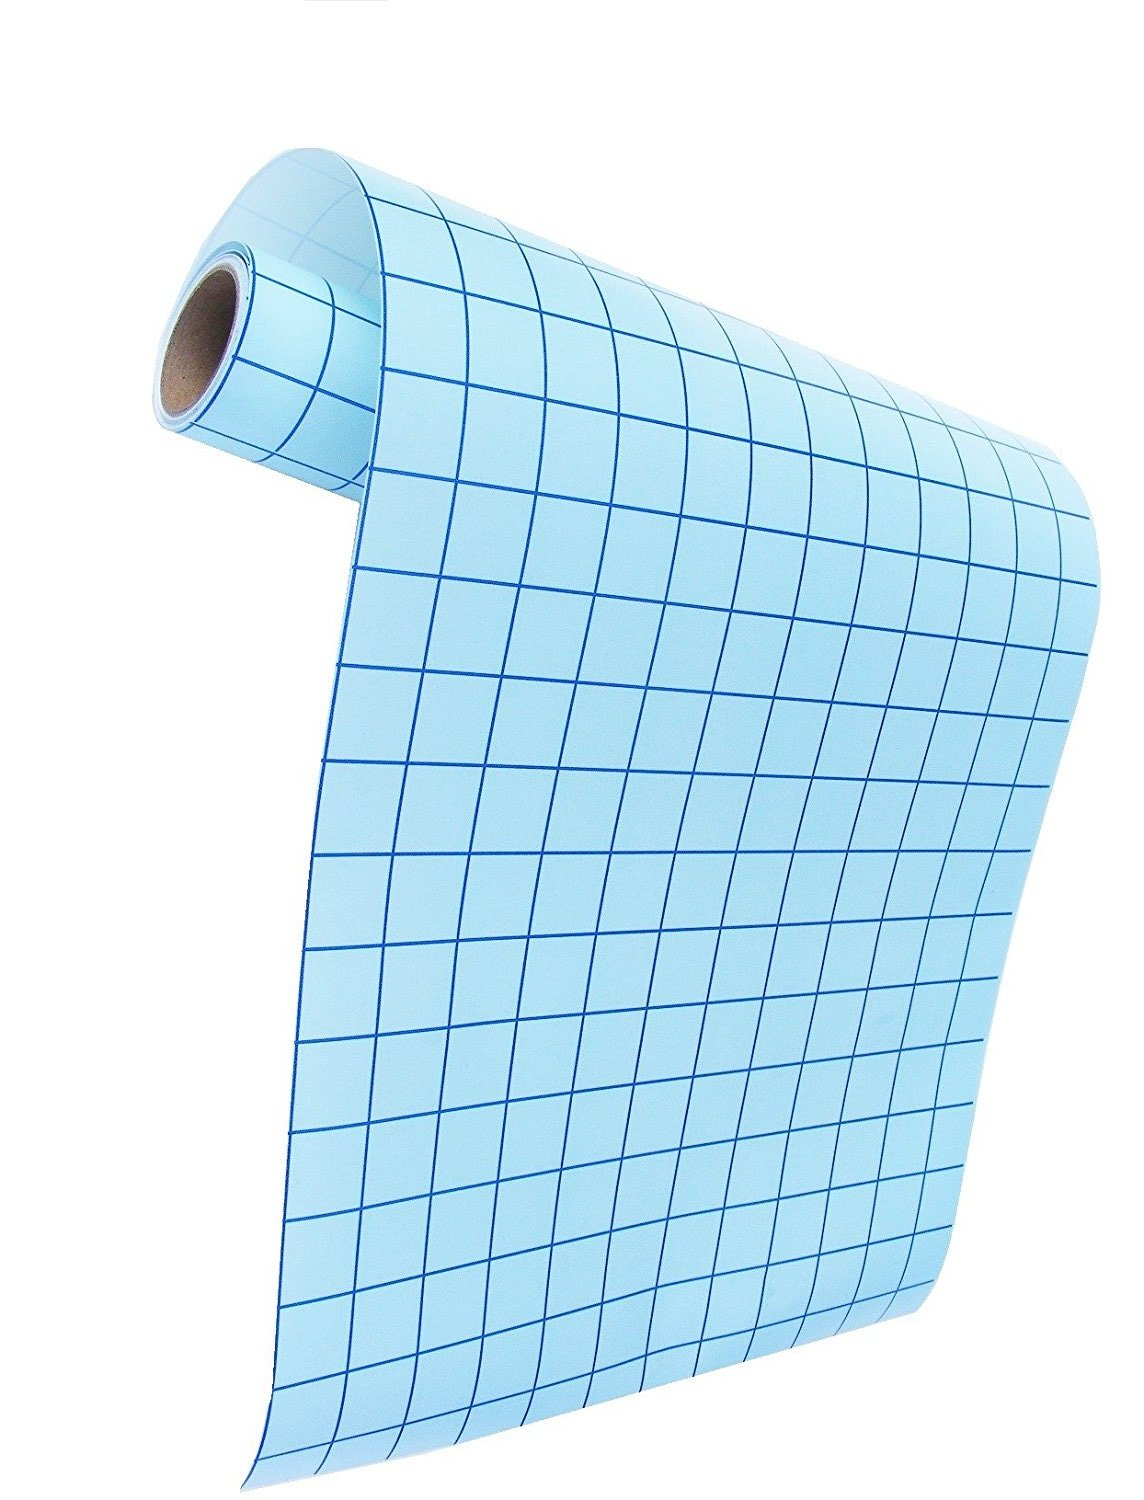 Decals Window JH Best Crafts Transfer Paper for Vinyl 12 Inch x 25 Feet Roll Use for Cameo Blue Grids for Good Alignment Self Adhesive Vinyl Sign Sticker Silhouette Transfer Paper Cricut